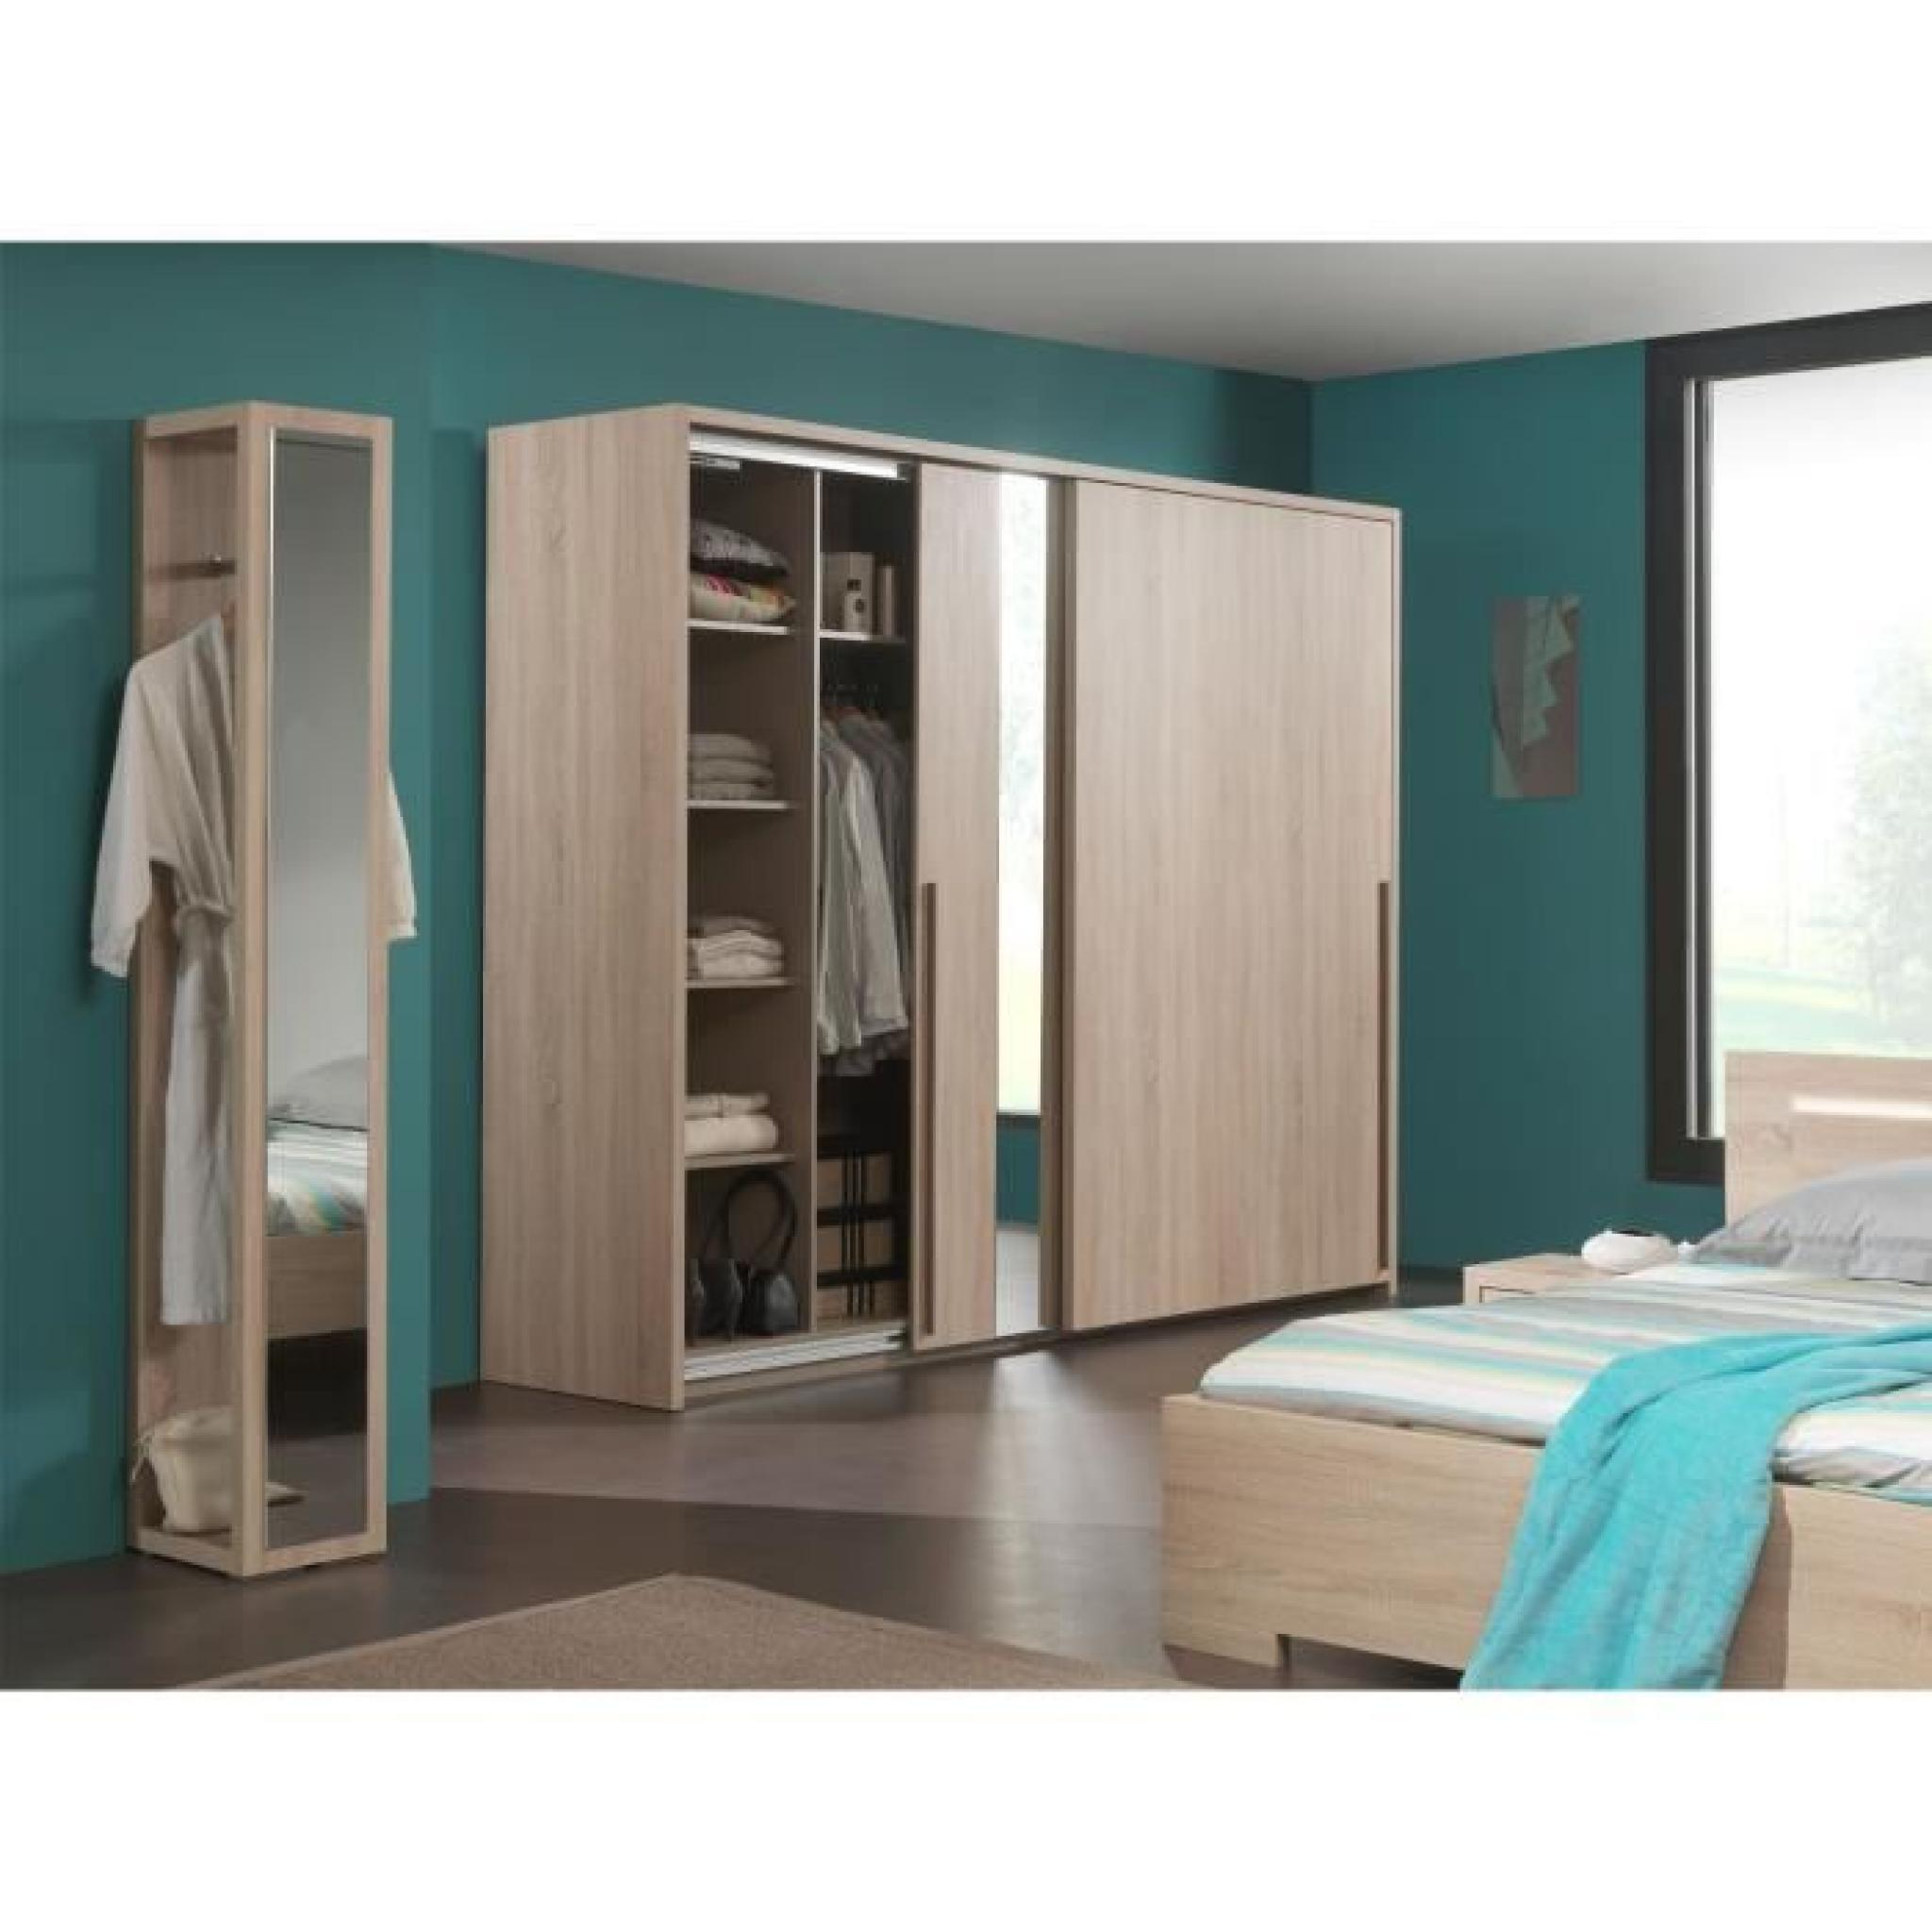 porte manteau pour chambre adulte avec miroir achat. Black Bedroom Furniture Sets. Home Design Ideas